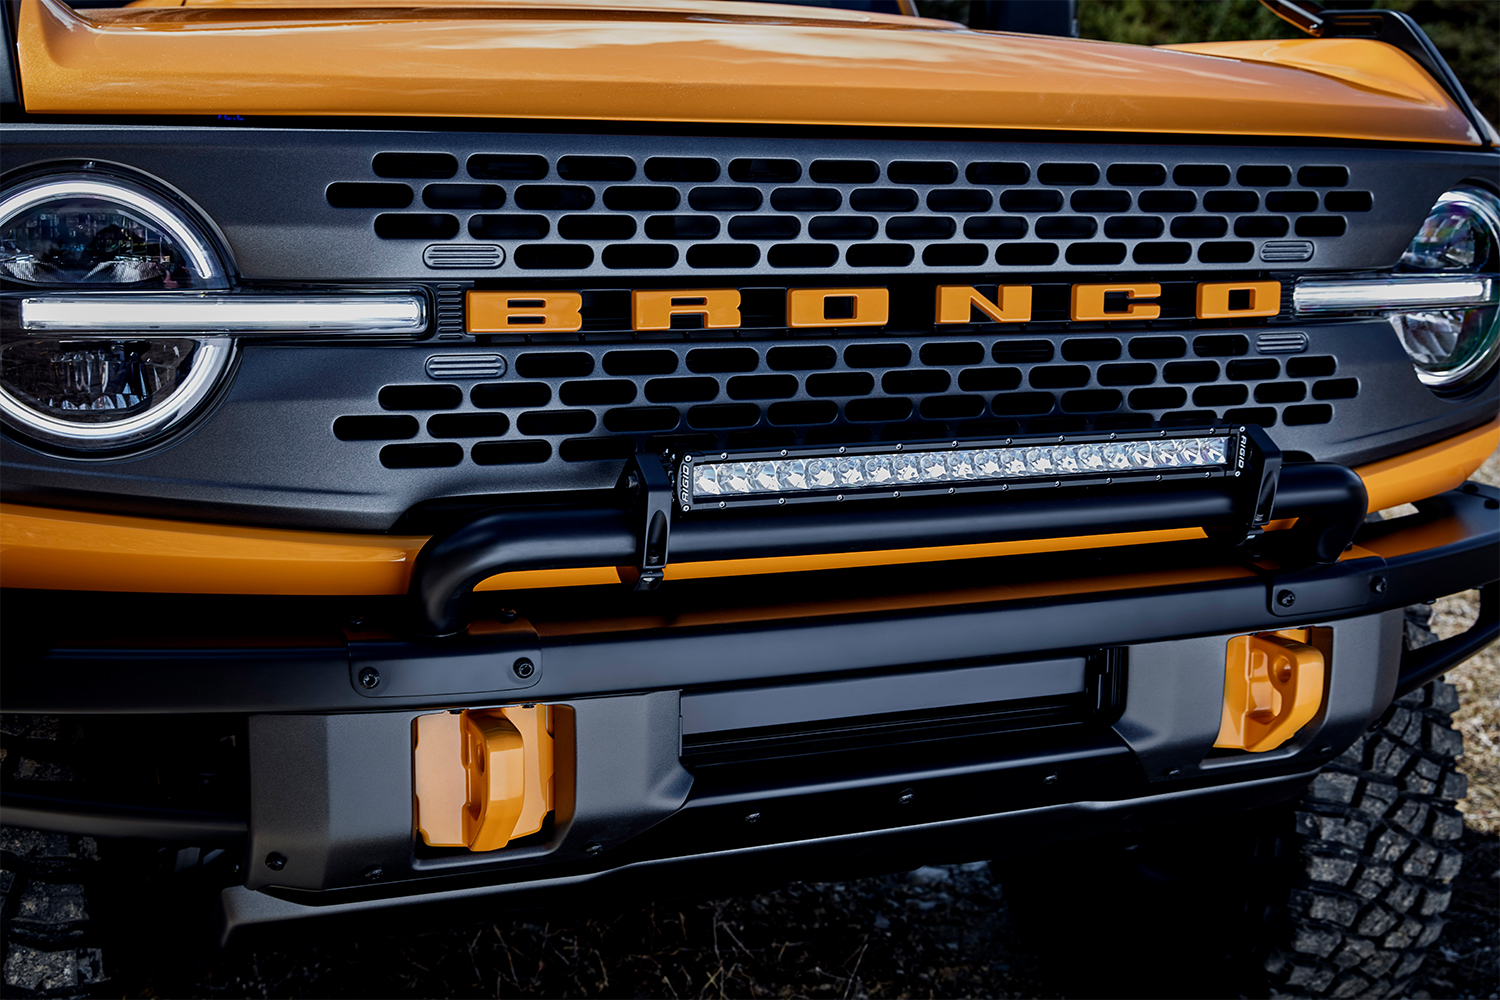 The grille of a 2021 Ford Bronco two-door off-road SUV